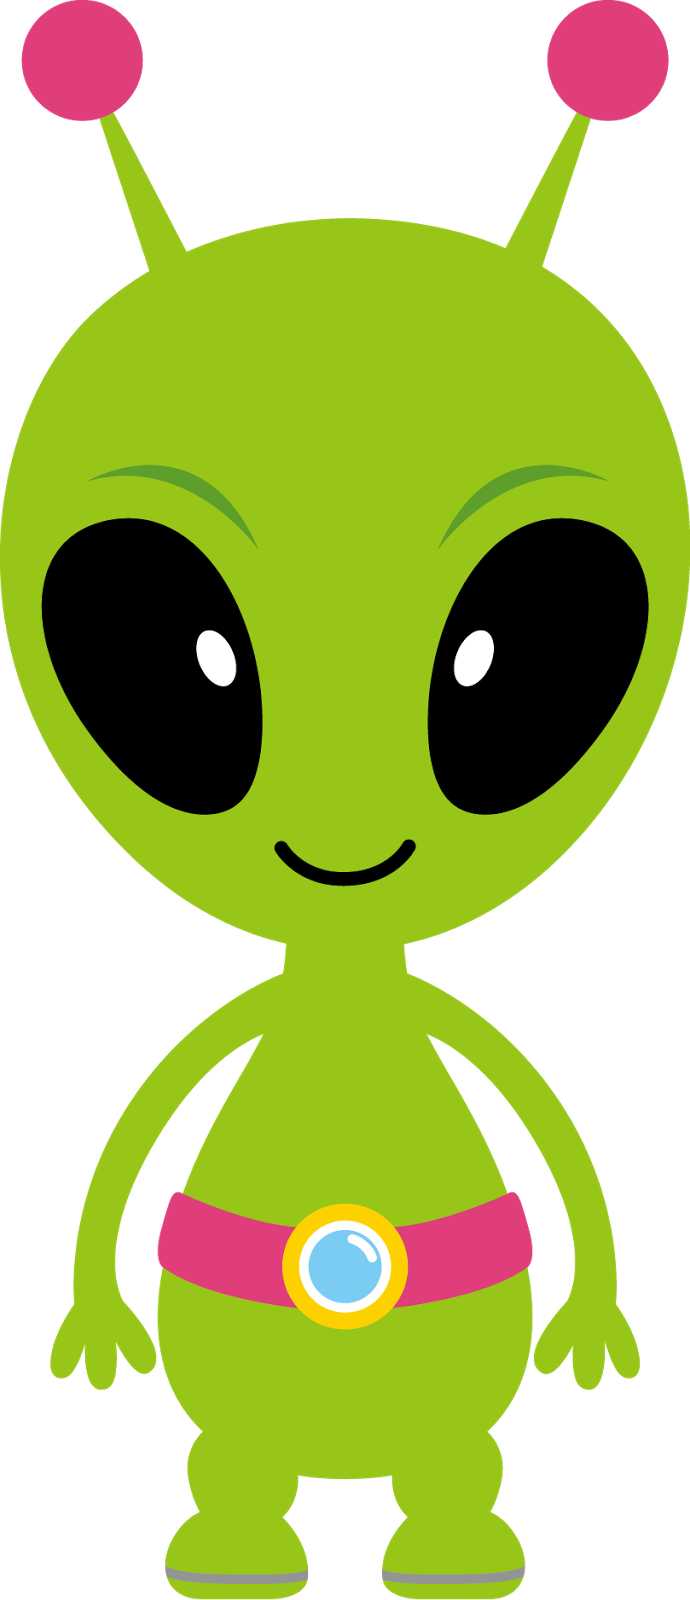 Alien clipart #16, Download drawings